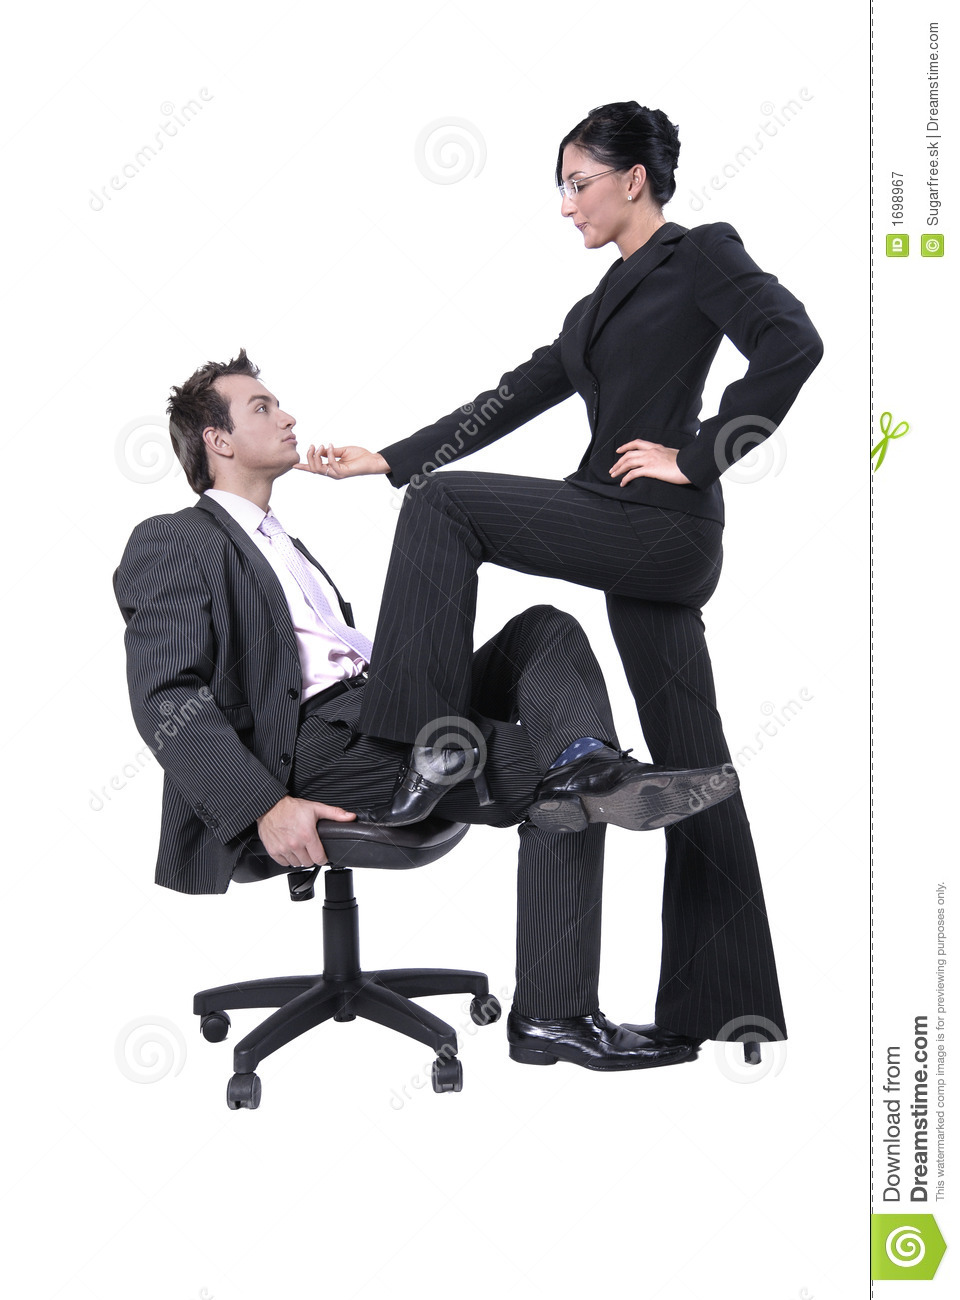 male dominance over women Gender: power and privilege the major feature of the social status of men and women is the dominance of men in refrain from all forms of abuse and control over women extend your group-level power, privilege, and influence wherever appropriate.